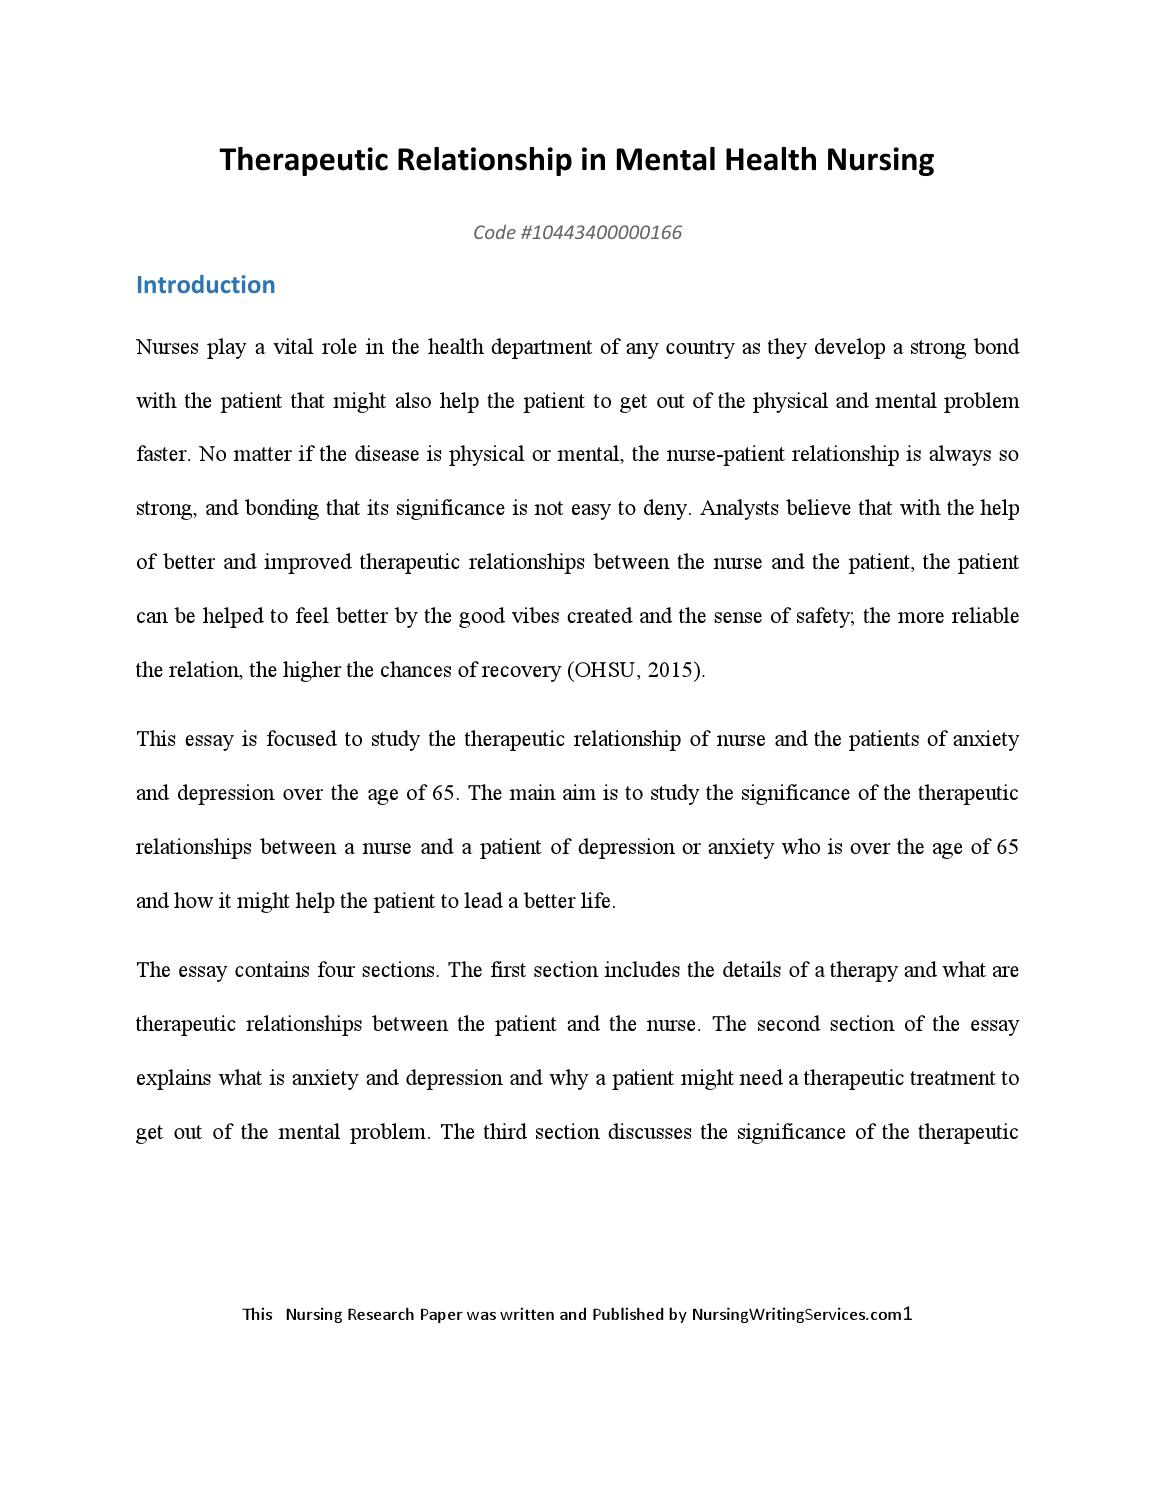 Therapeutic Relationship In Mental Health Nursing By Academic  Therapeutic Relationship In Mental Health Nursing By Academic Essay Writers   Issuu